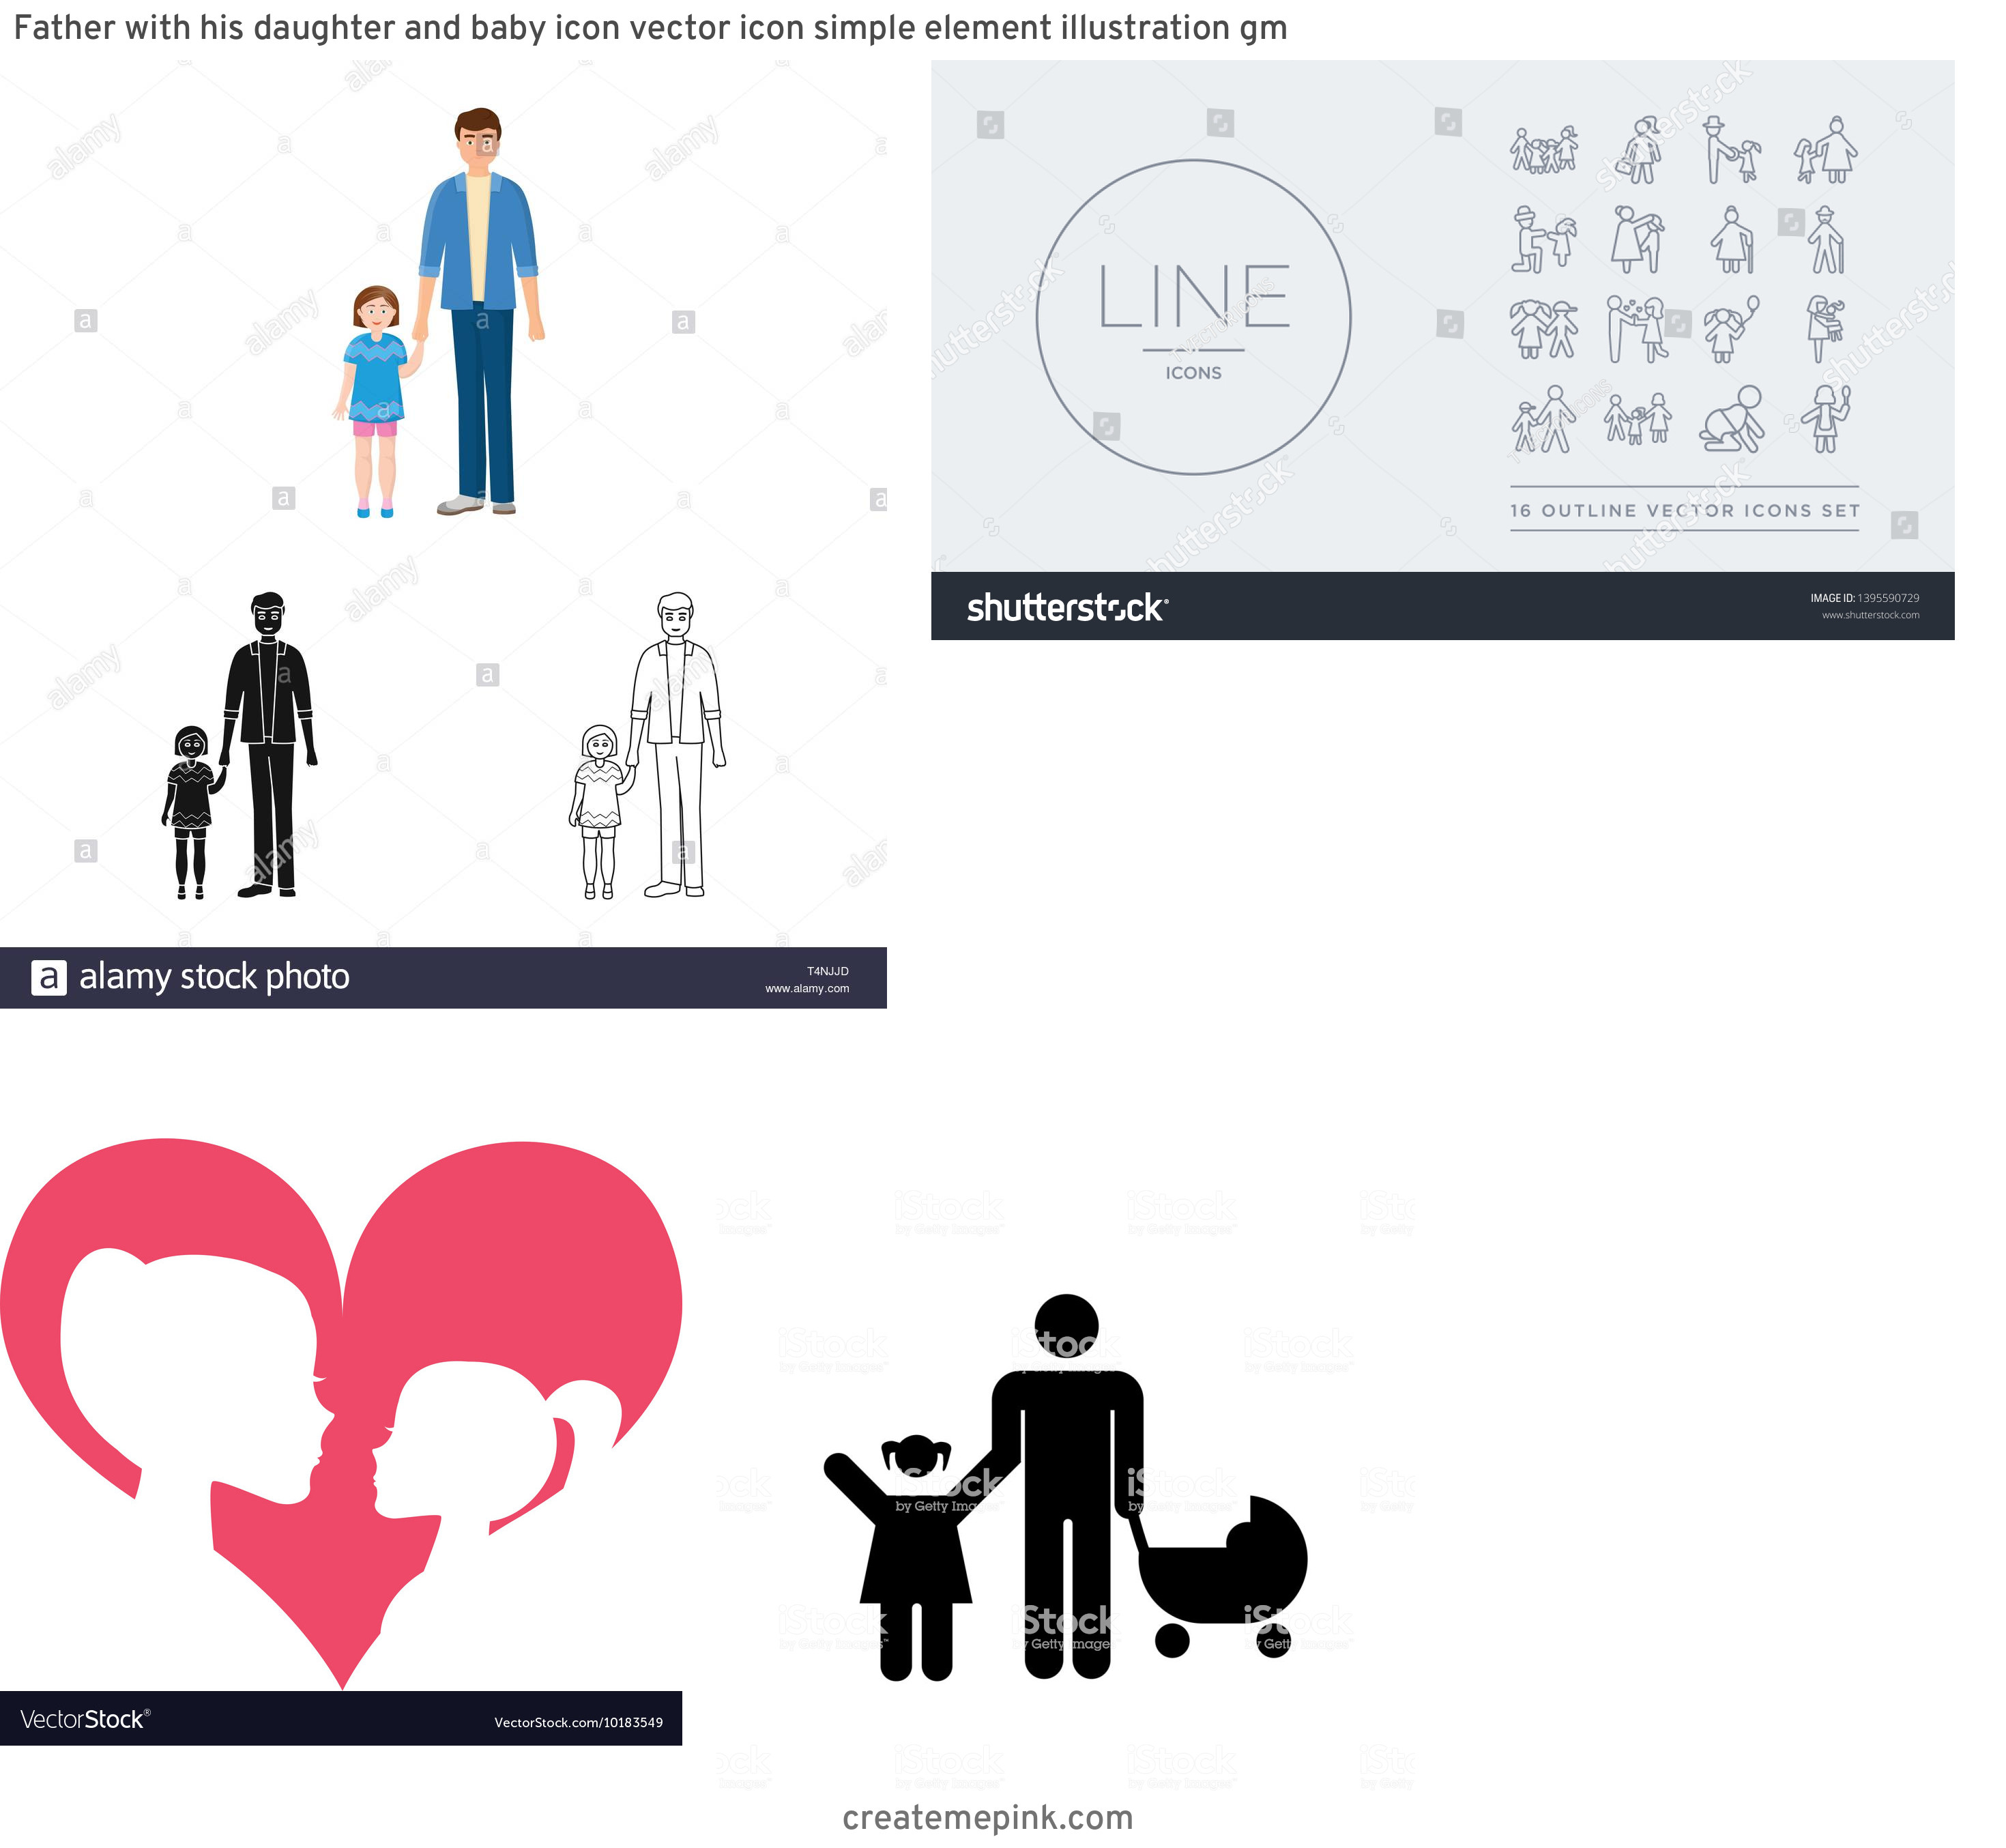 Daughter Vector Icons: Father With His Daughter And Baby Icon Vector Icon Simple Element Illustration Gm